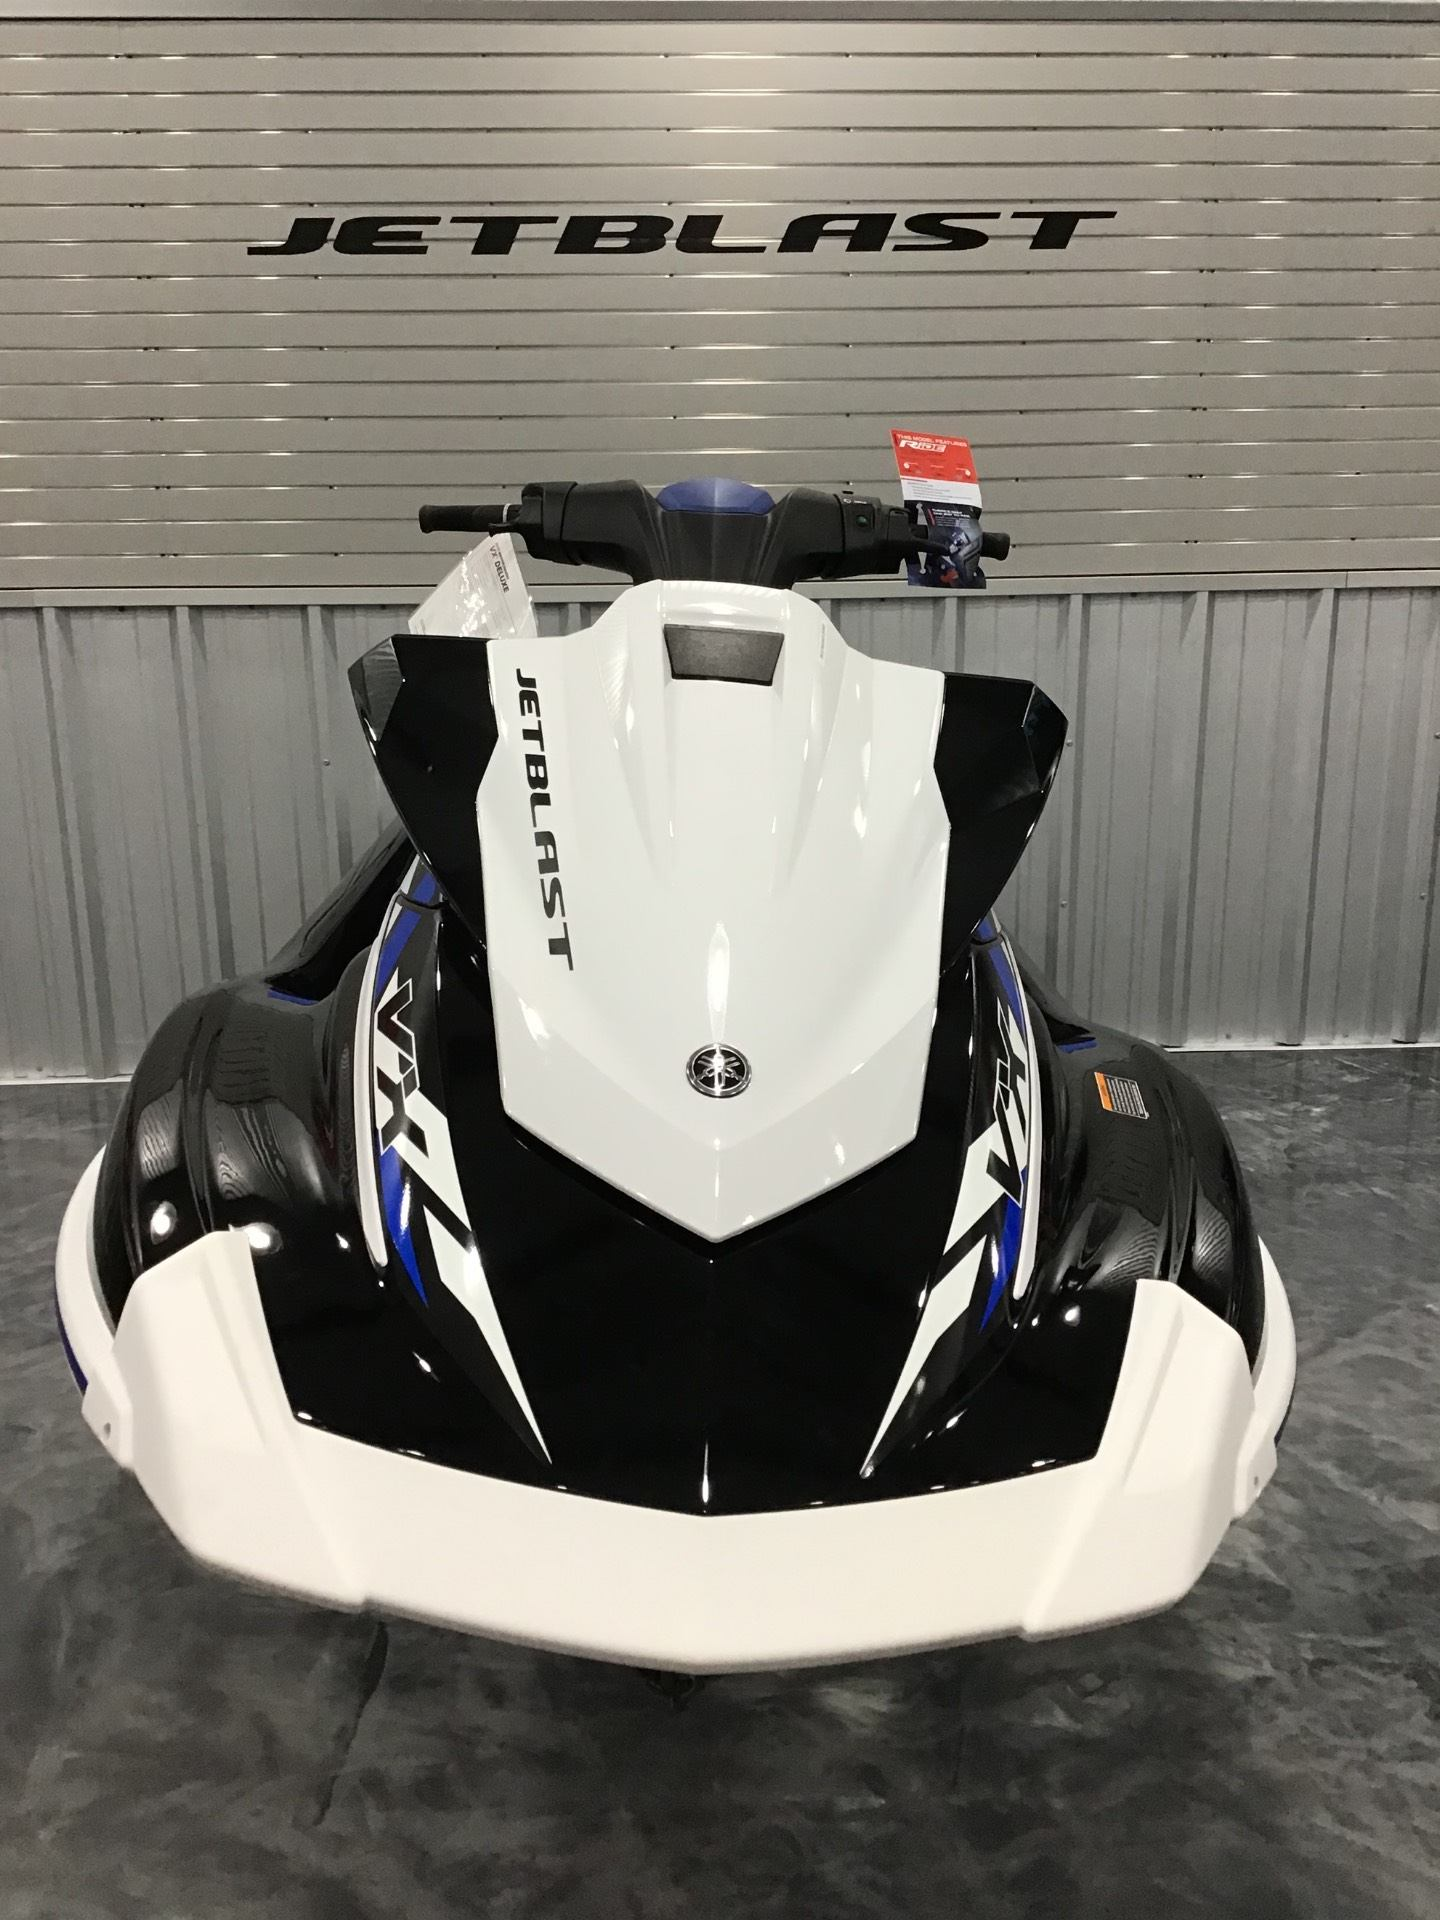 2019 Yamaha VX Deluxe in Gulfport, Mississippi - Photo 4